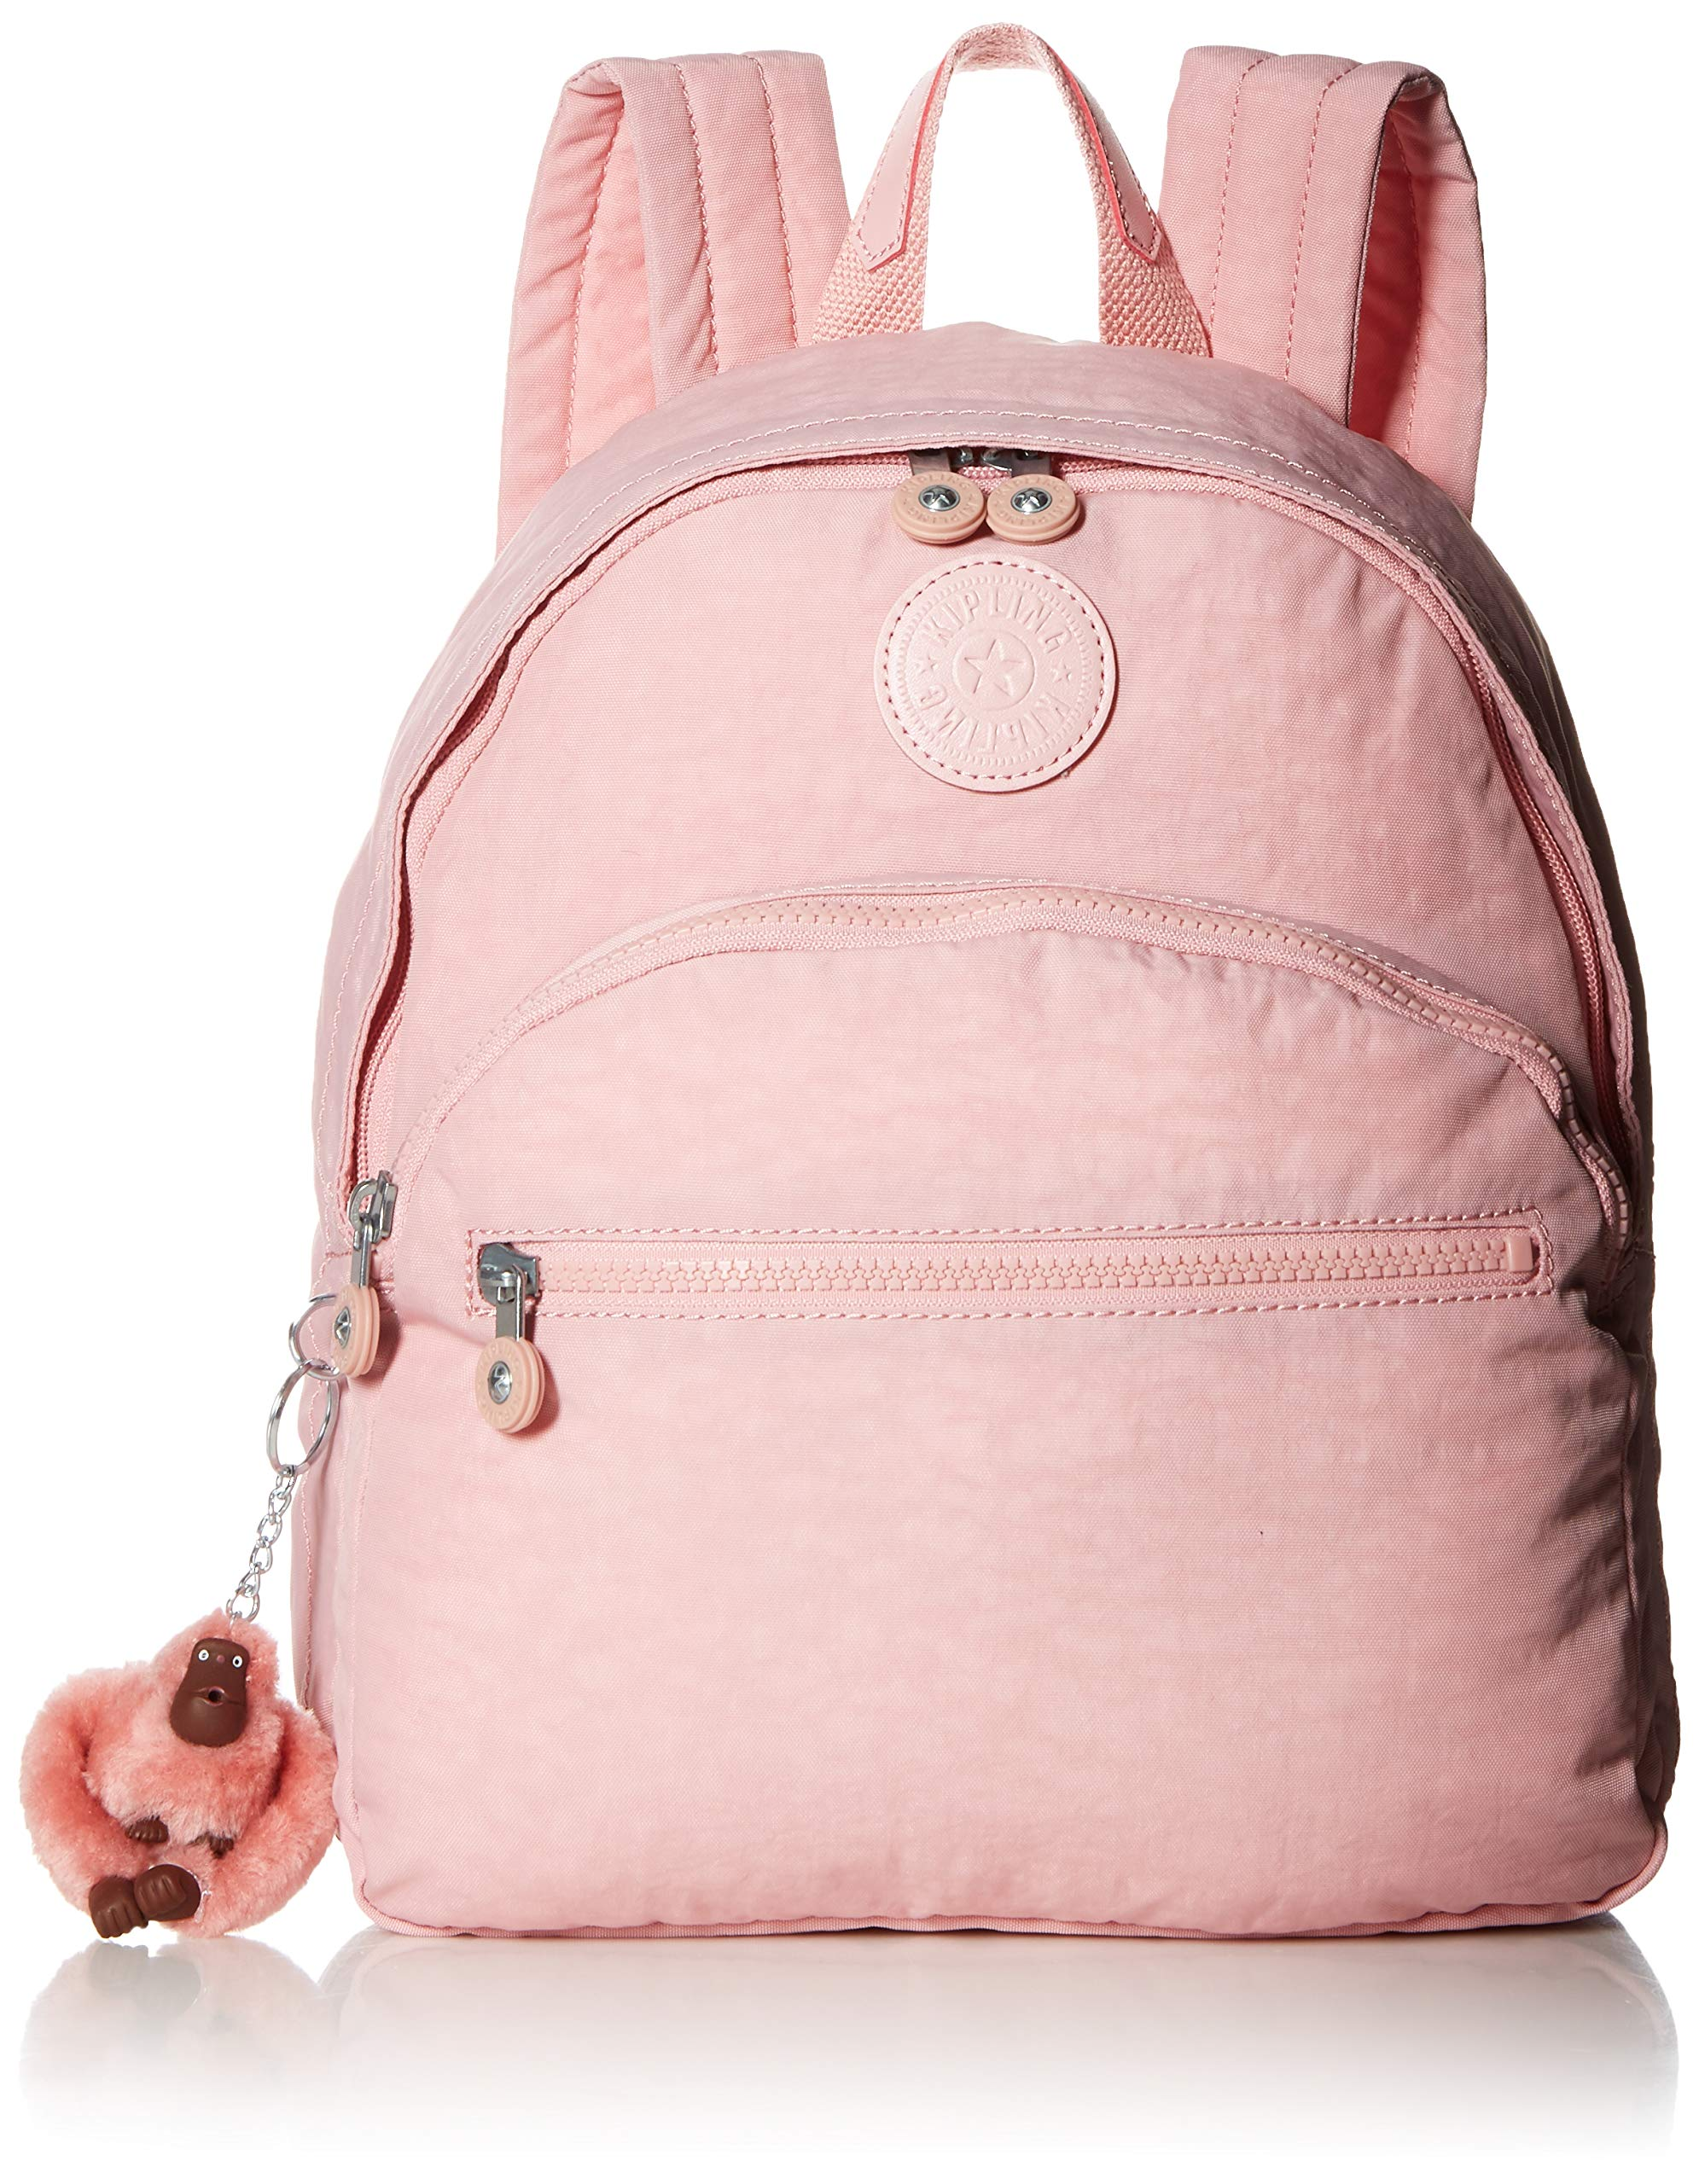 Kipling womens Paola Backpack, Adjustable, Padded Backpack Straps, Zip Closure, blushing posies blue, One Size